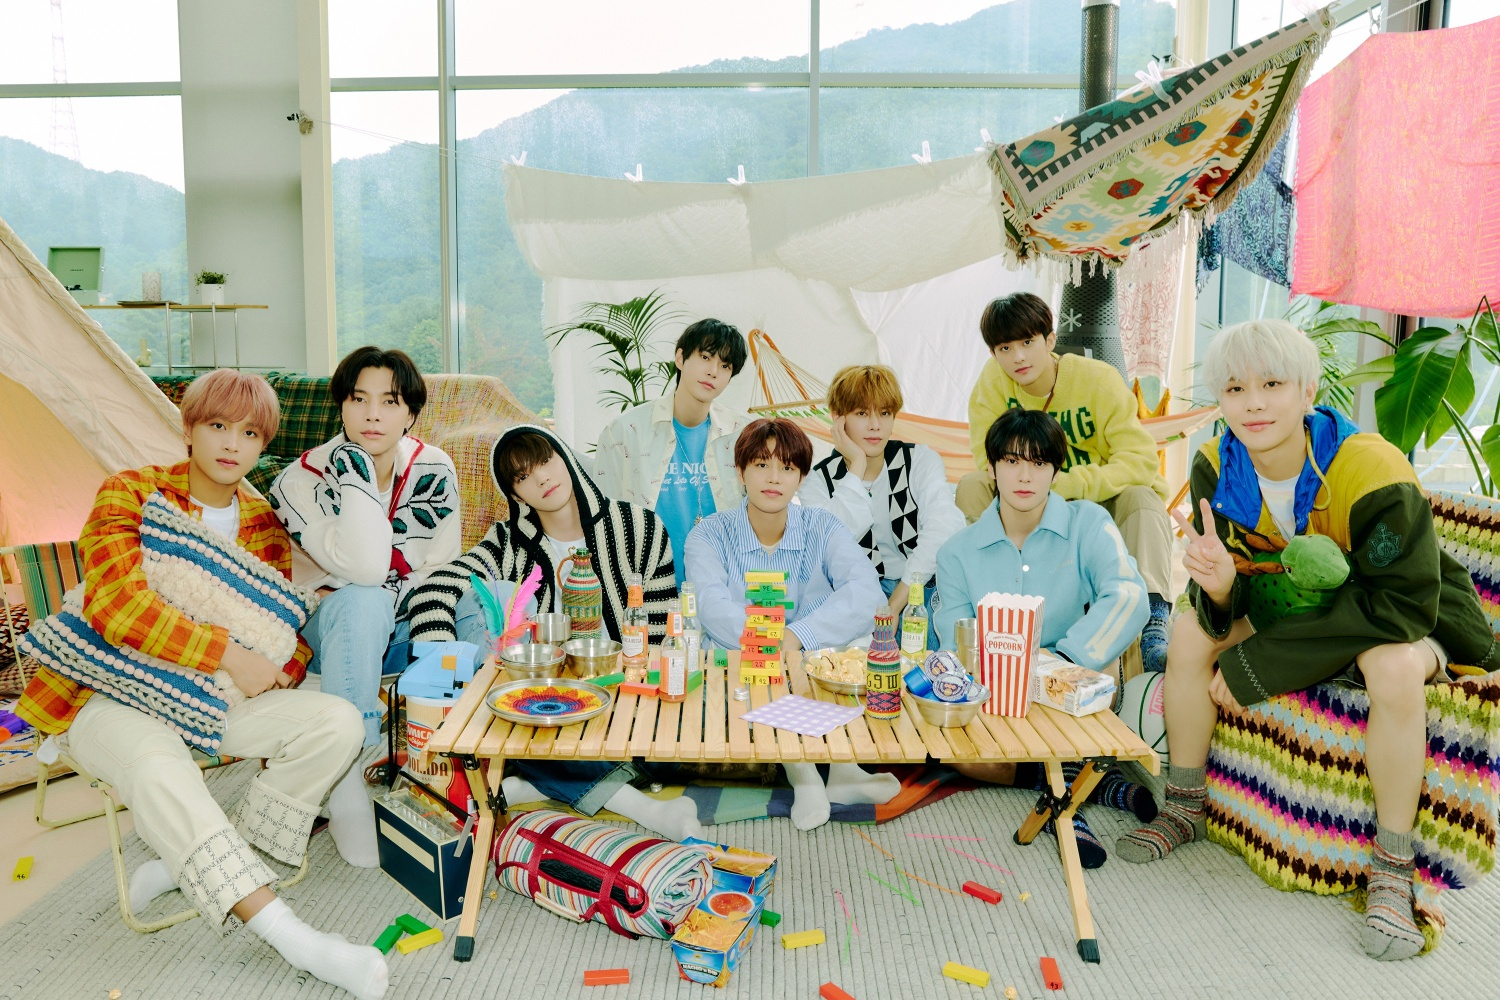 NCT 127, released the track video of 'Road Trip', the 3rd full-length album today